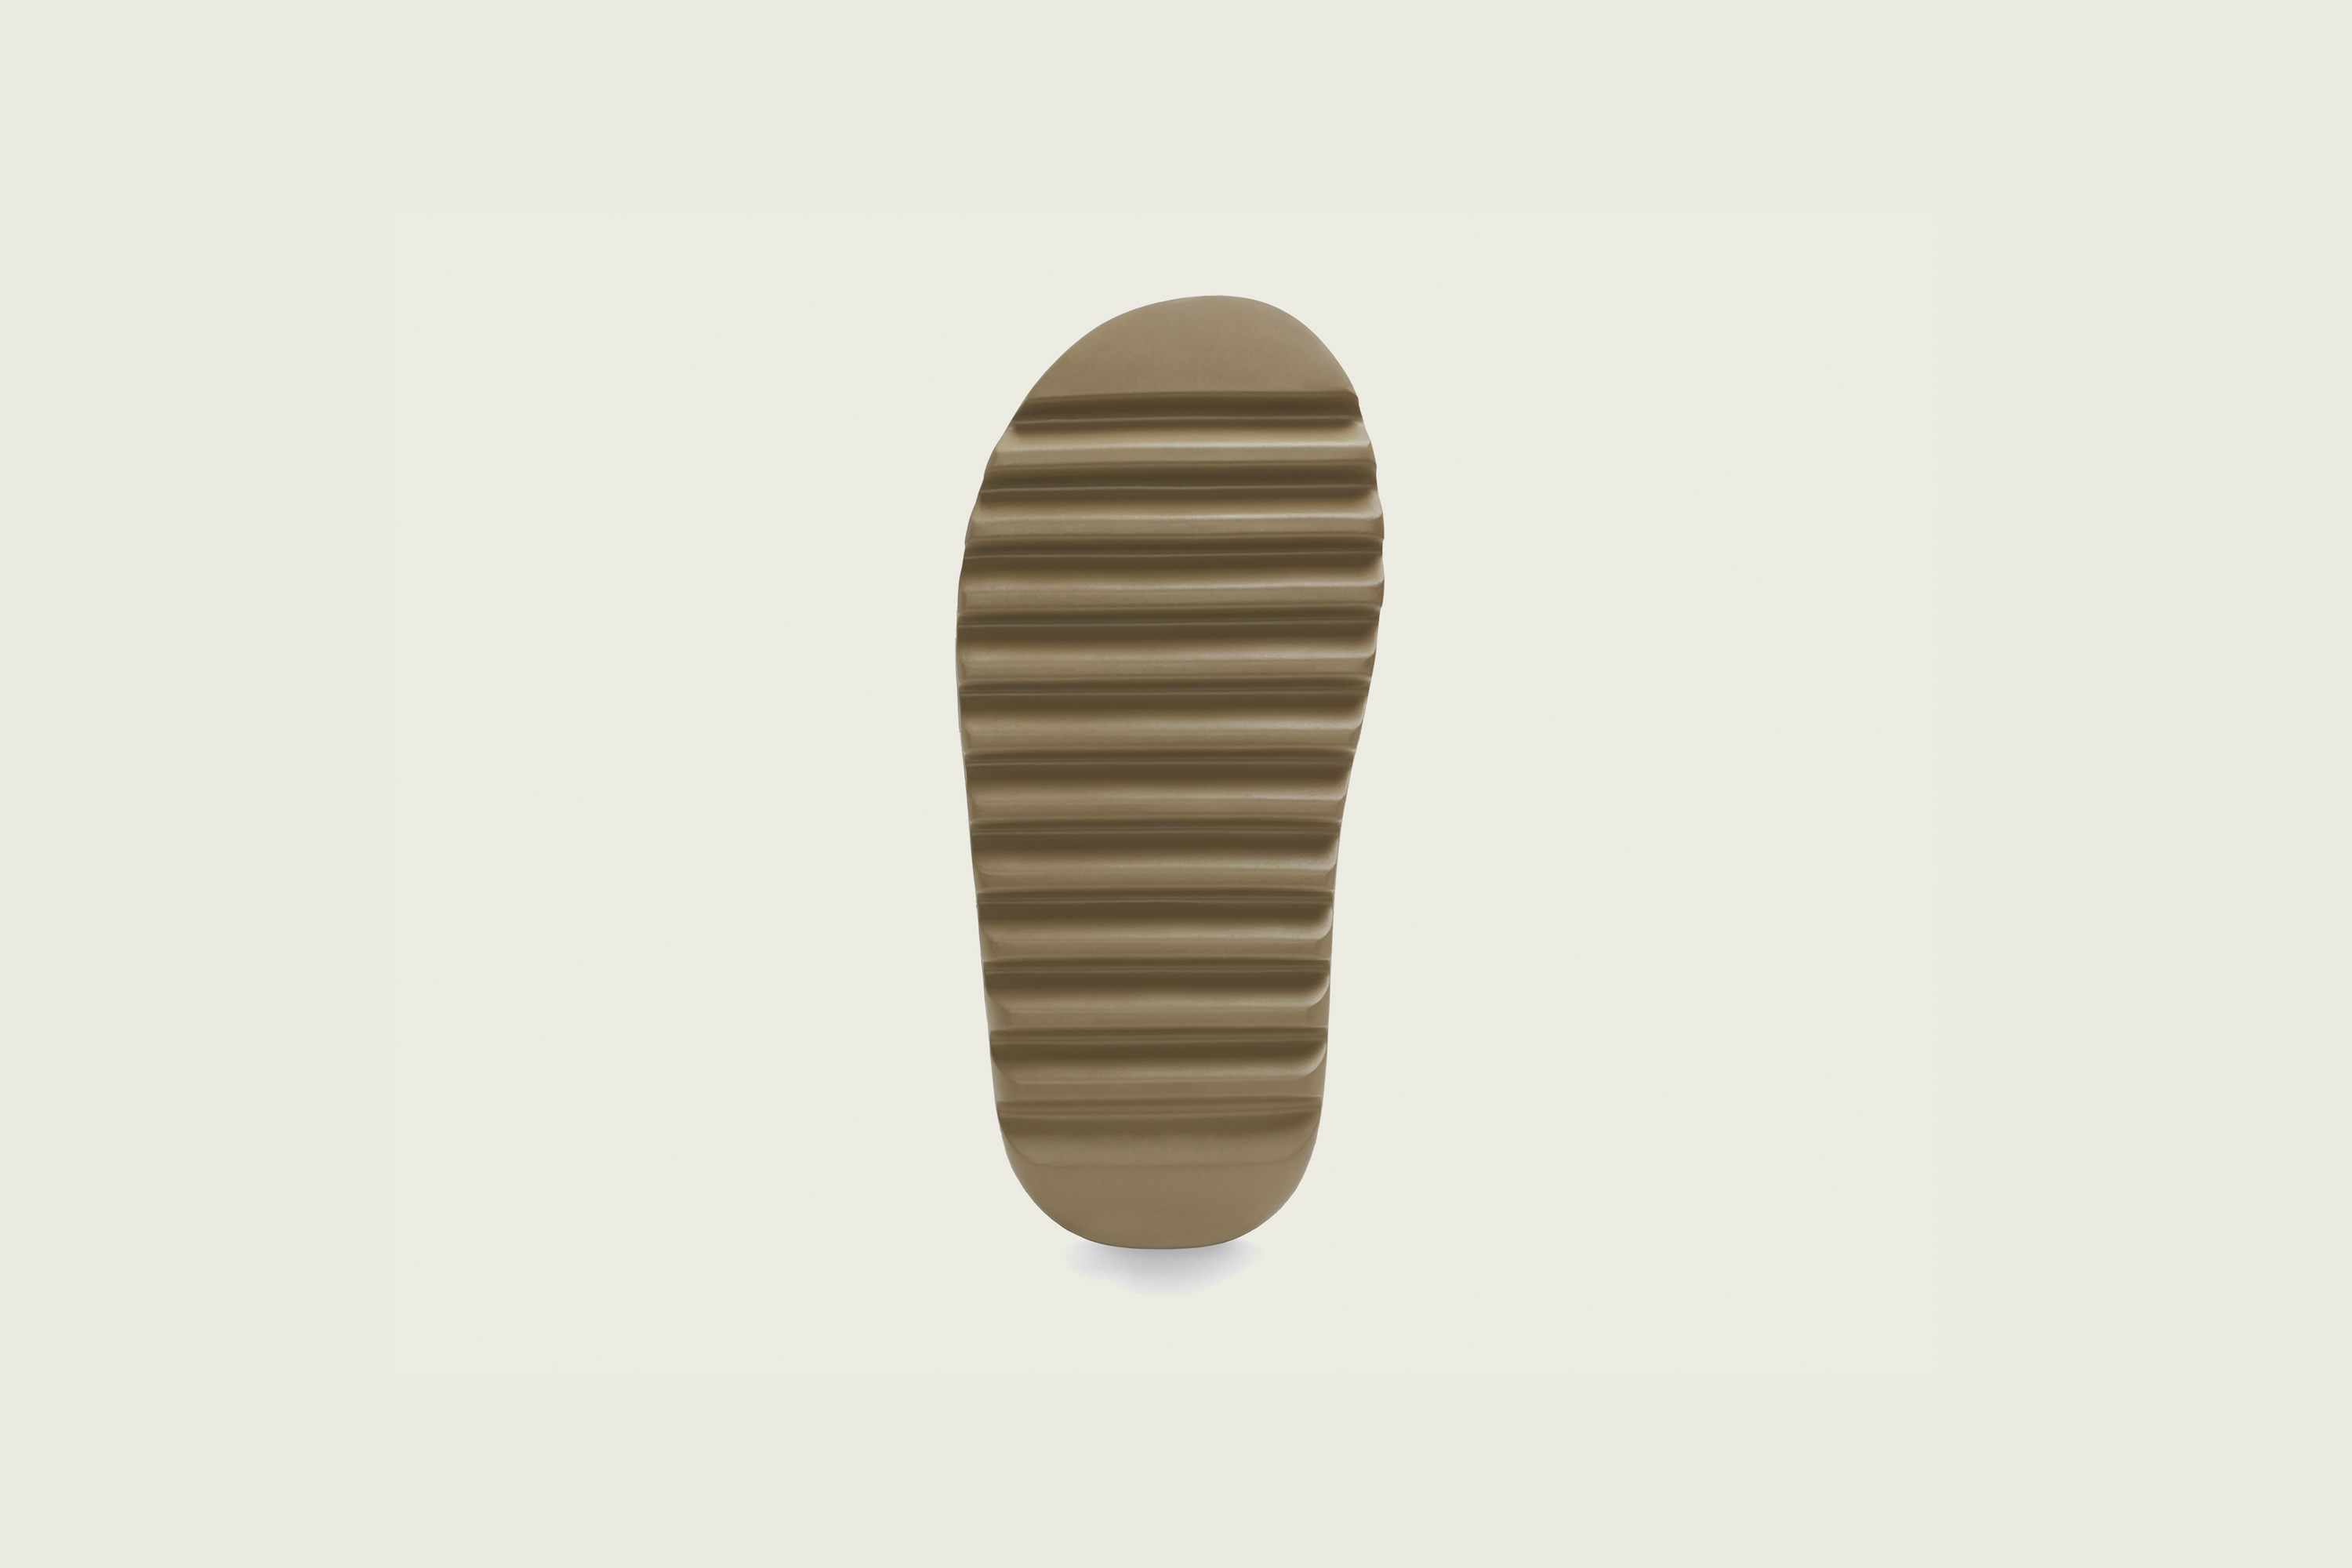 adidas - Yeezy Slide - Core - Up There